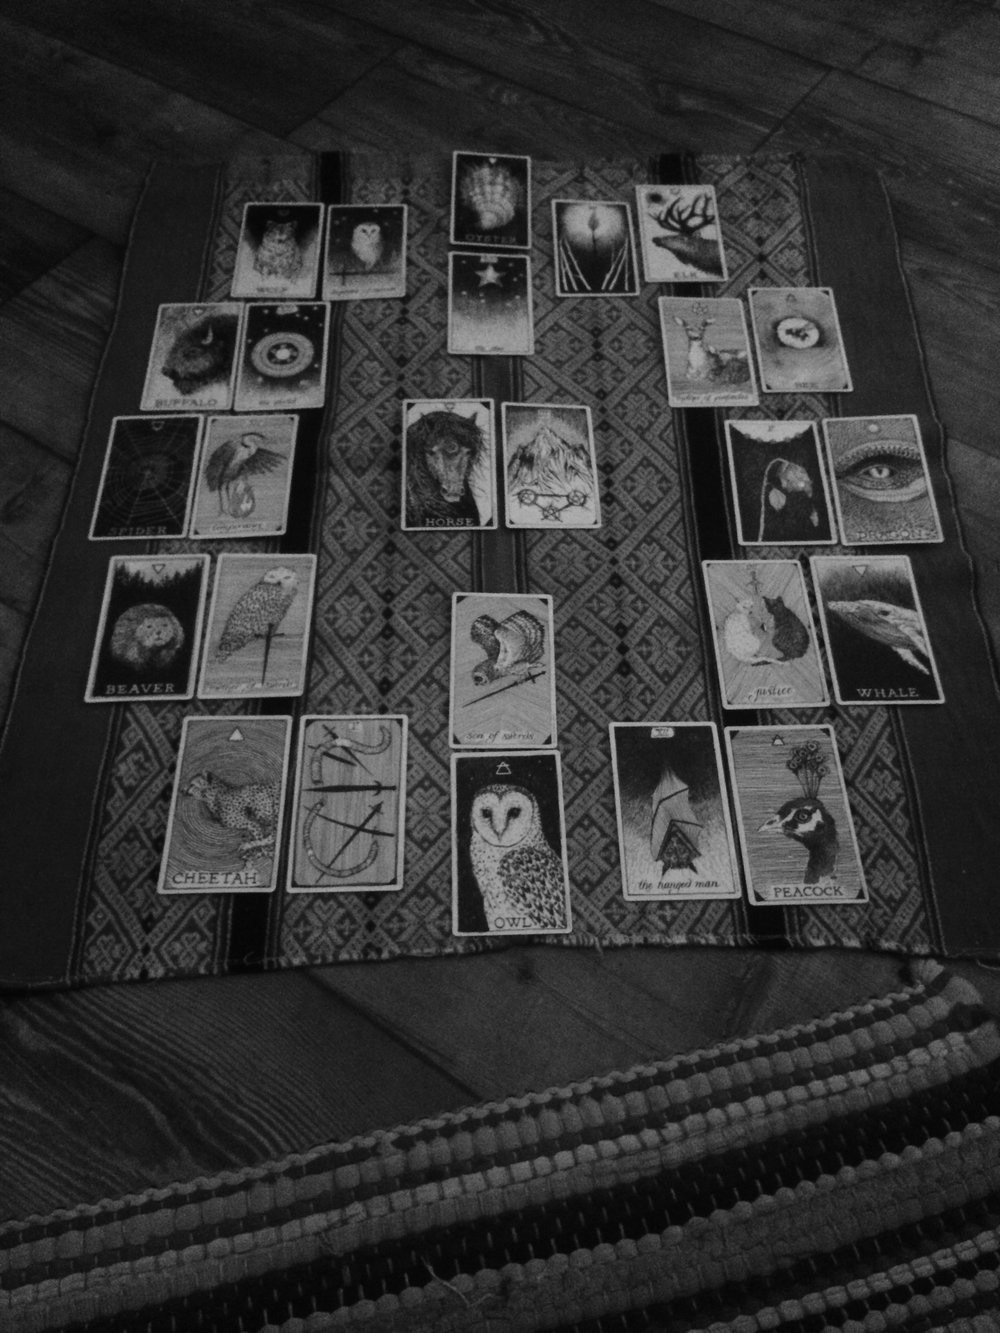 Another view of my 2017 year ahead tarot spread. I used a black and white filter for this picture because I like the way The Wild Unknown decks look in this pared down light.